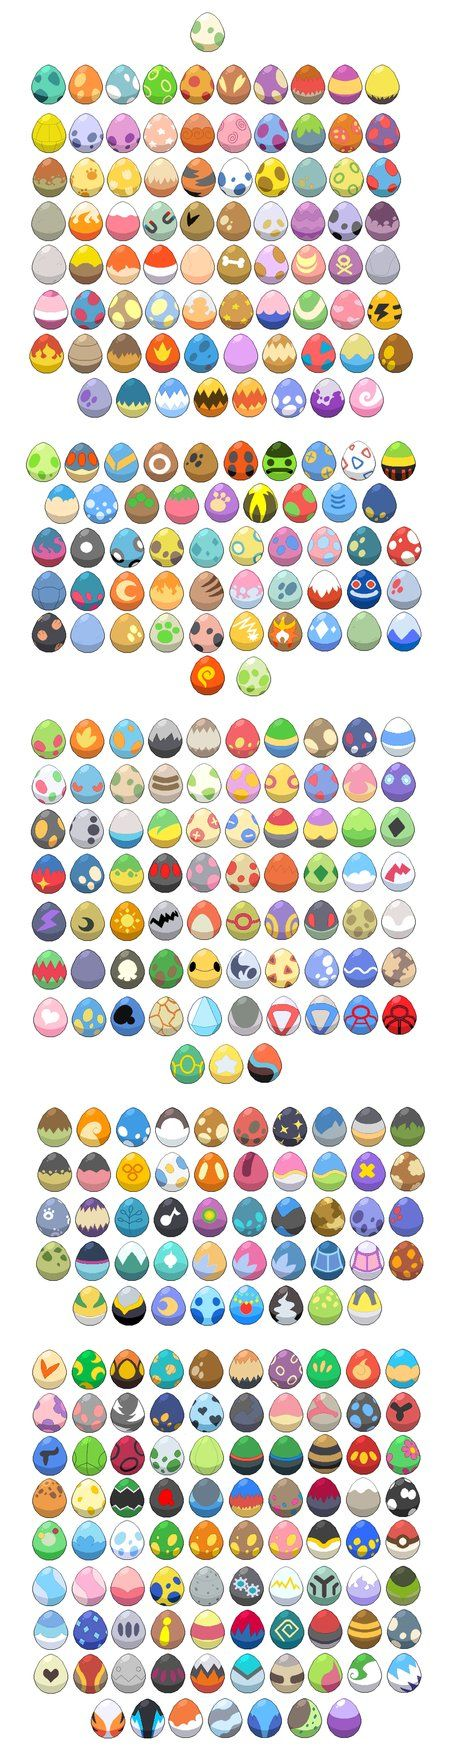 Pokemon Eggs, by WaterTrainer. Some based on the anime designs, the rest are made up.